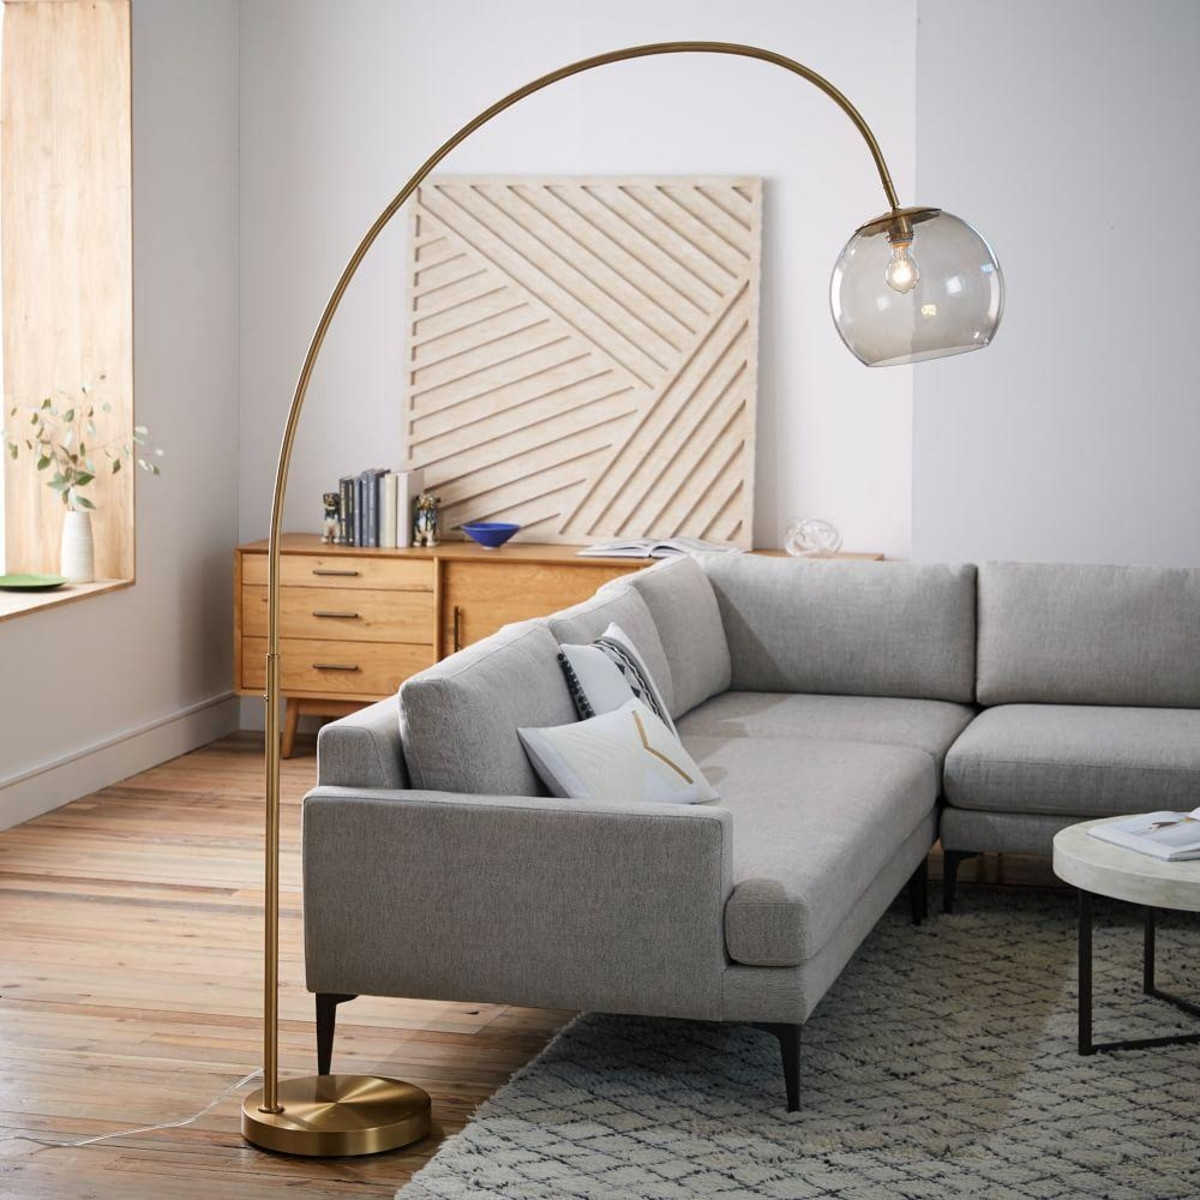 Acrylic Living Room Floor Lamps — S3Cparis Lamps Design : Fabulous Intended For Small Living Room Table Lamps (#1 of 15)